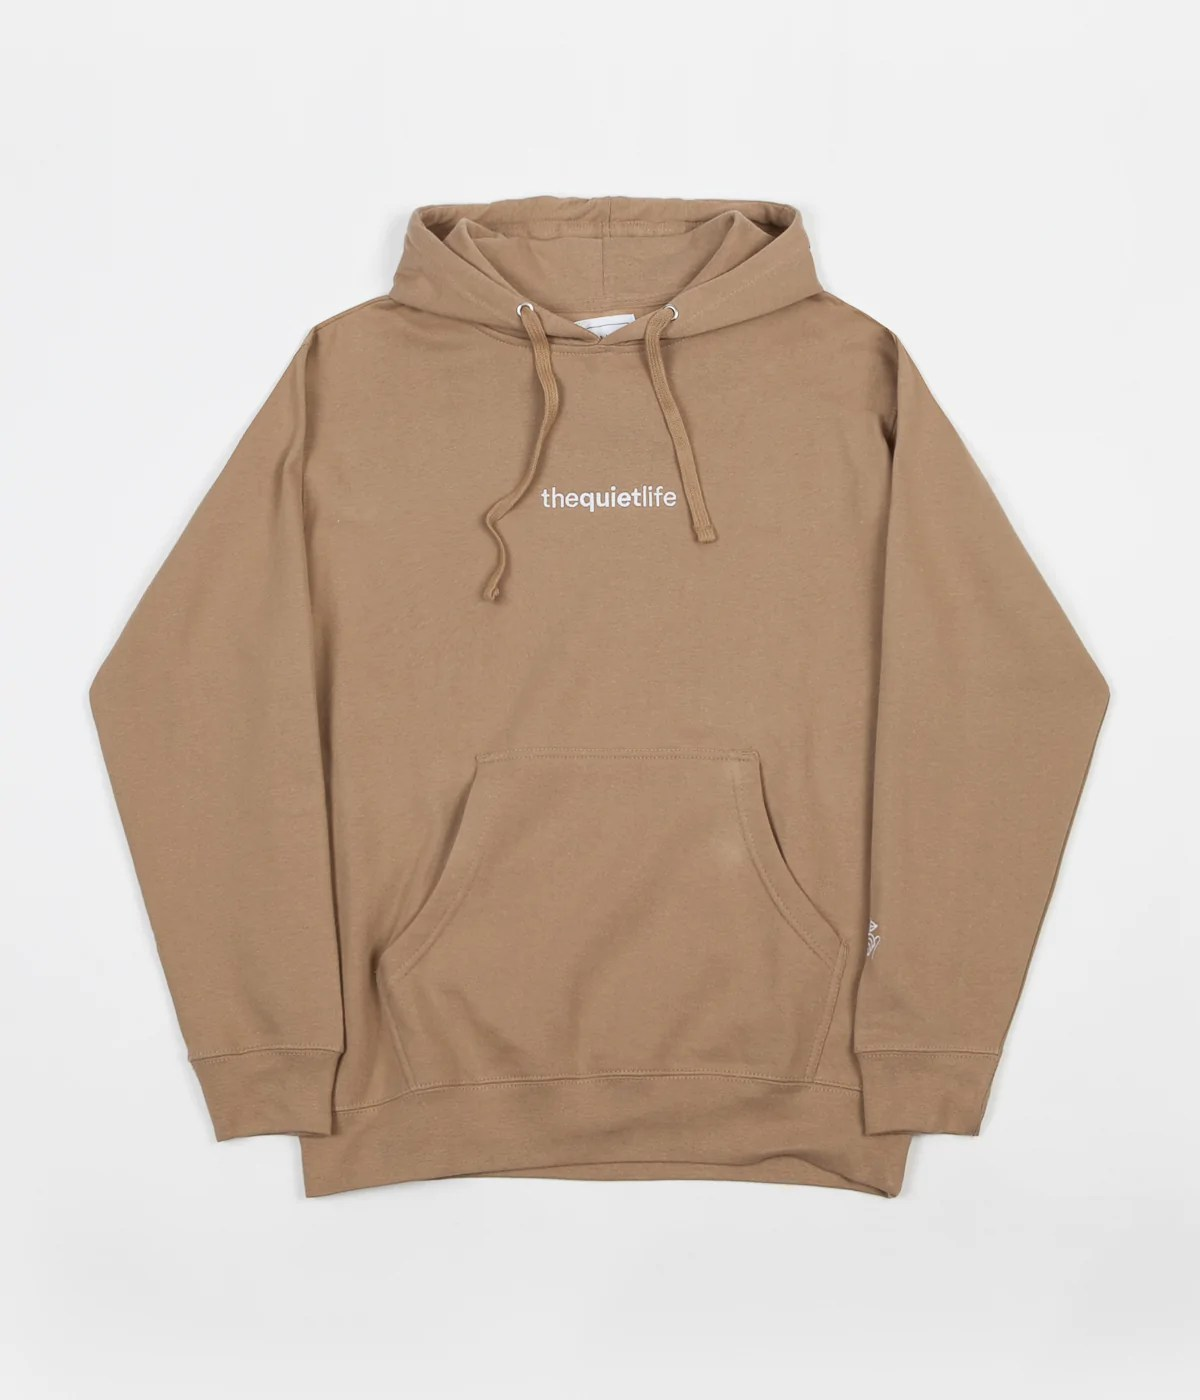 Pull Over Origin The Quiet Life Embroidered Origin Hoodie Sand